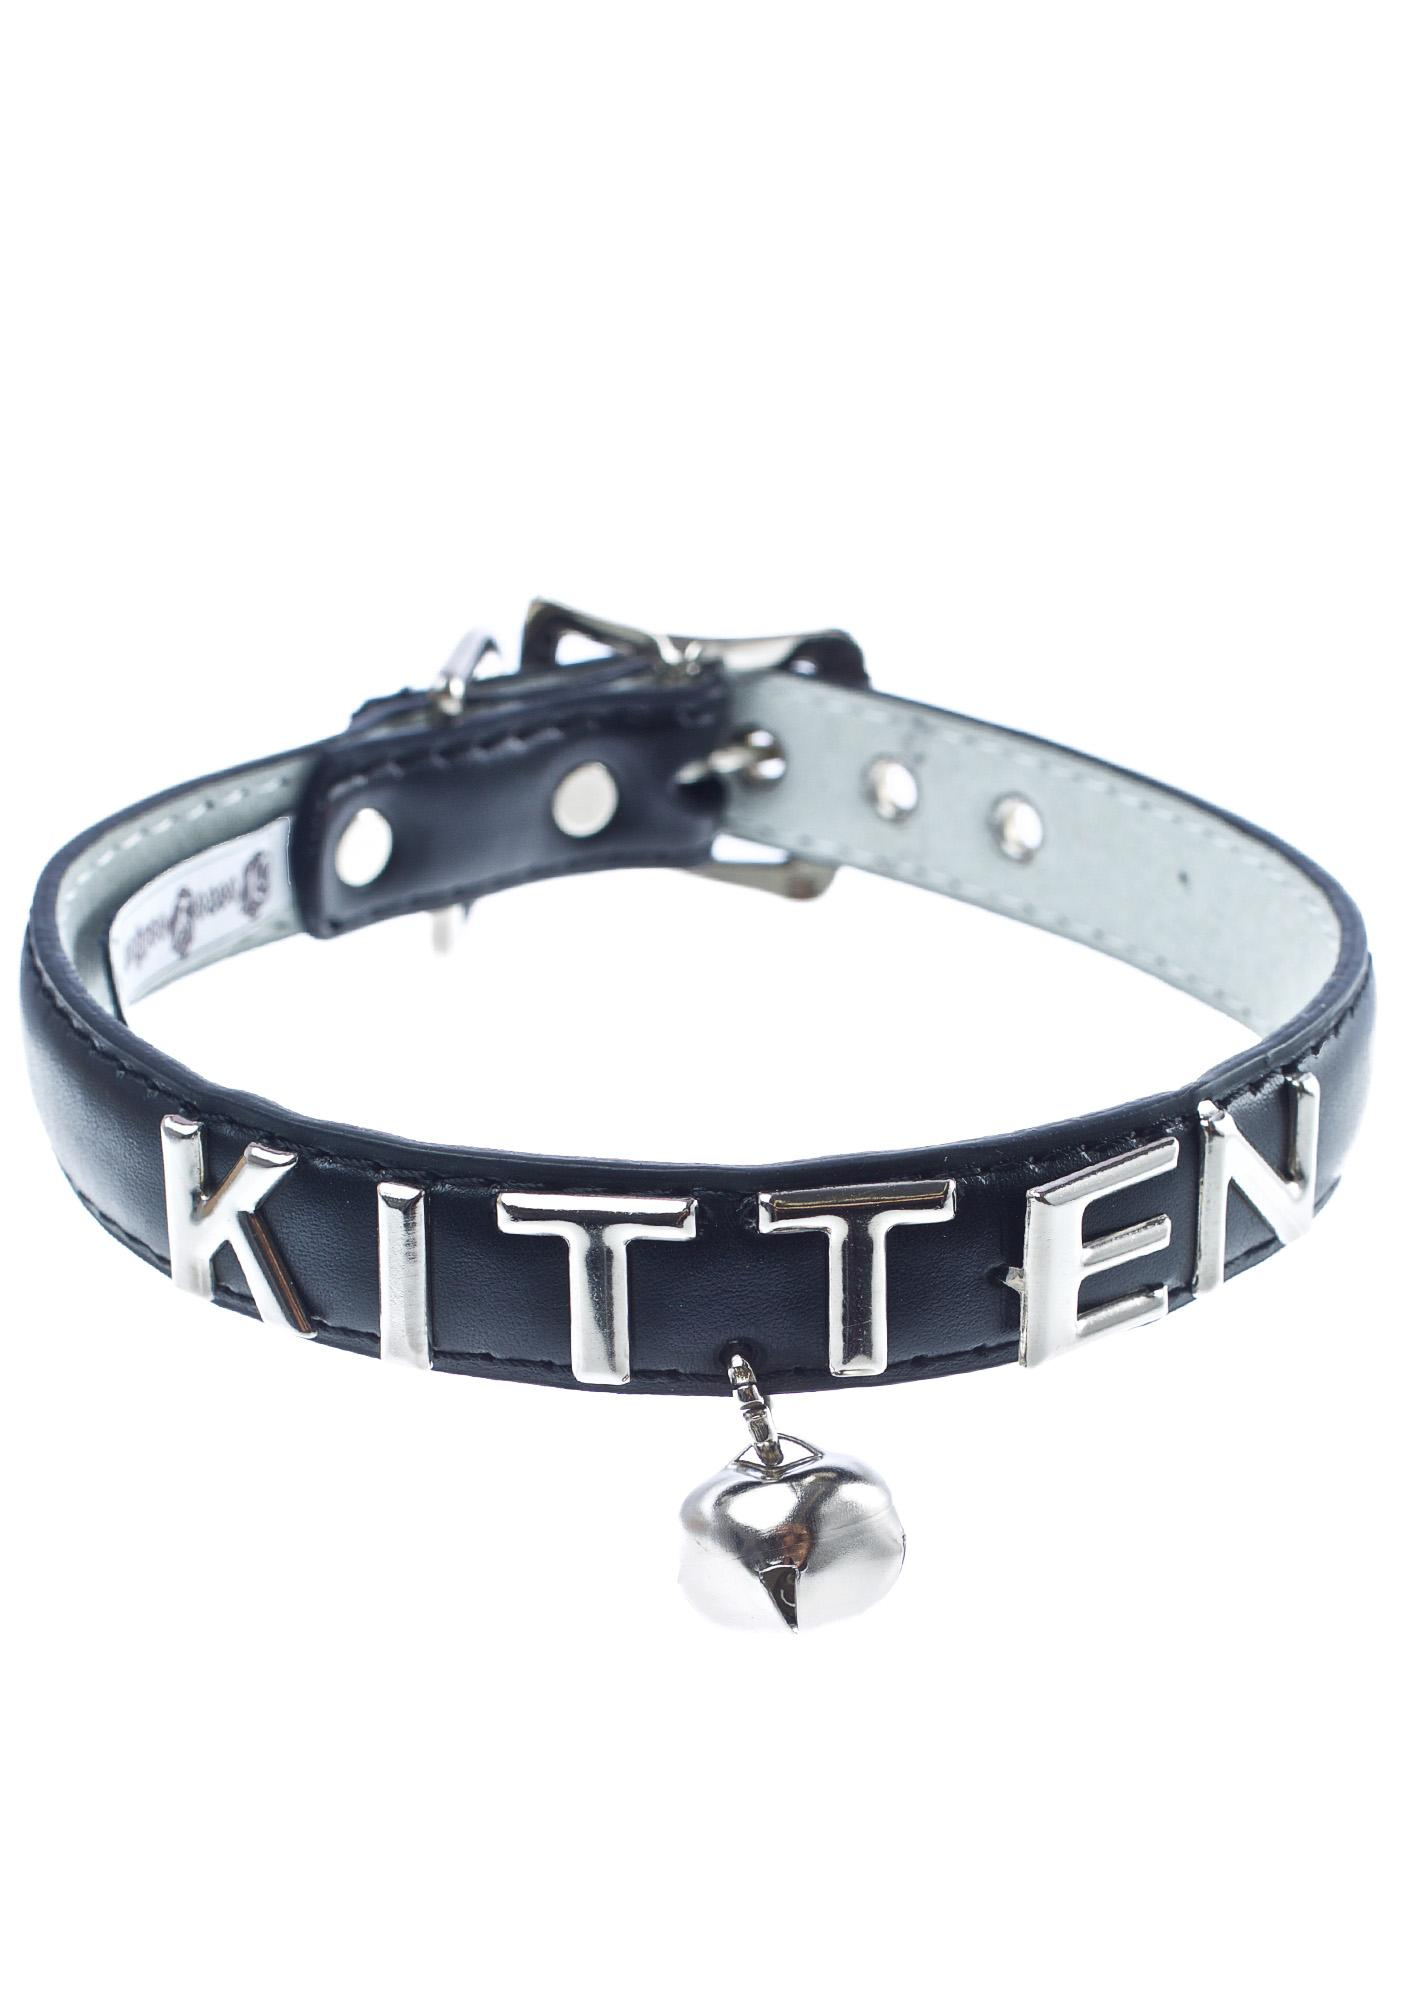 NecroLeather Vices Kitten Bell Collar